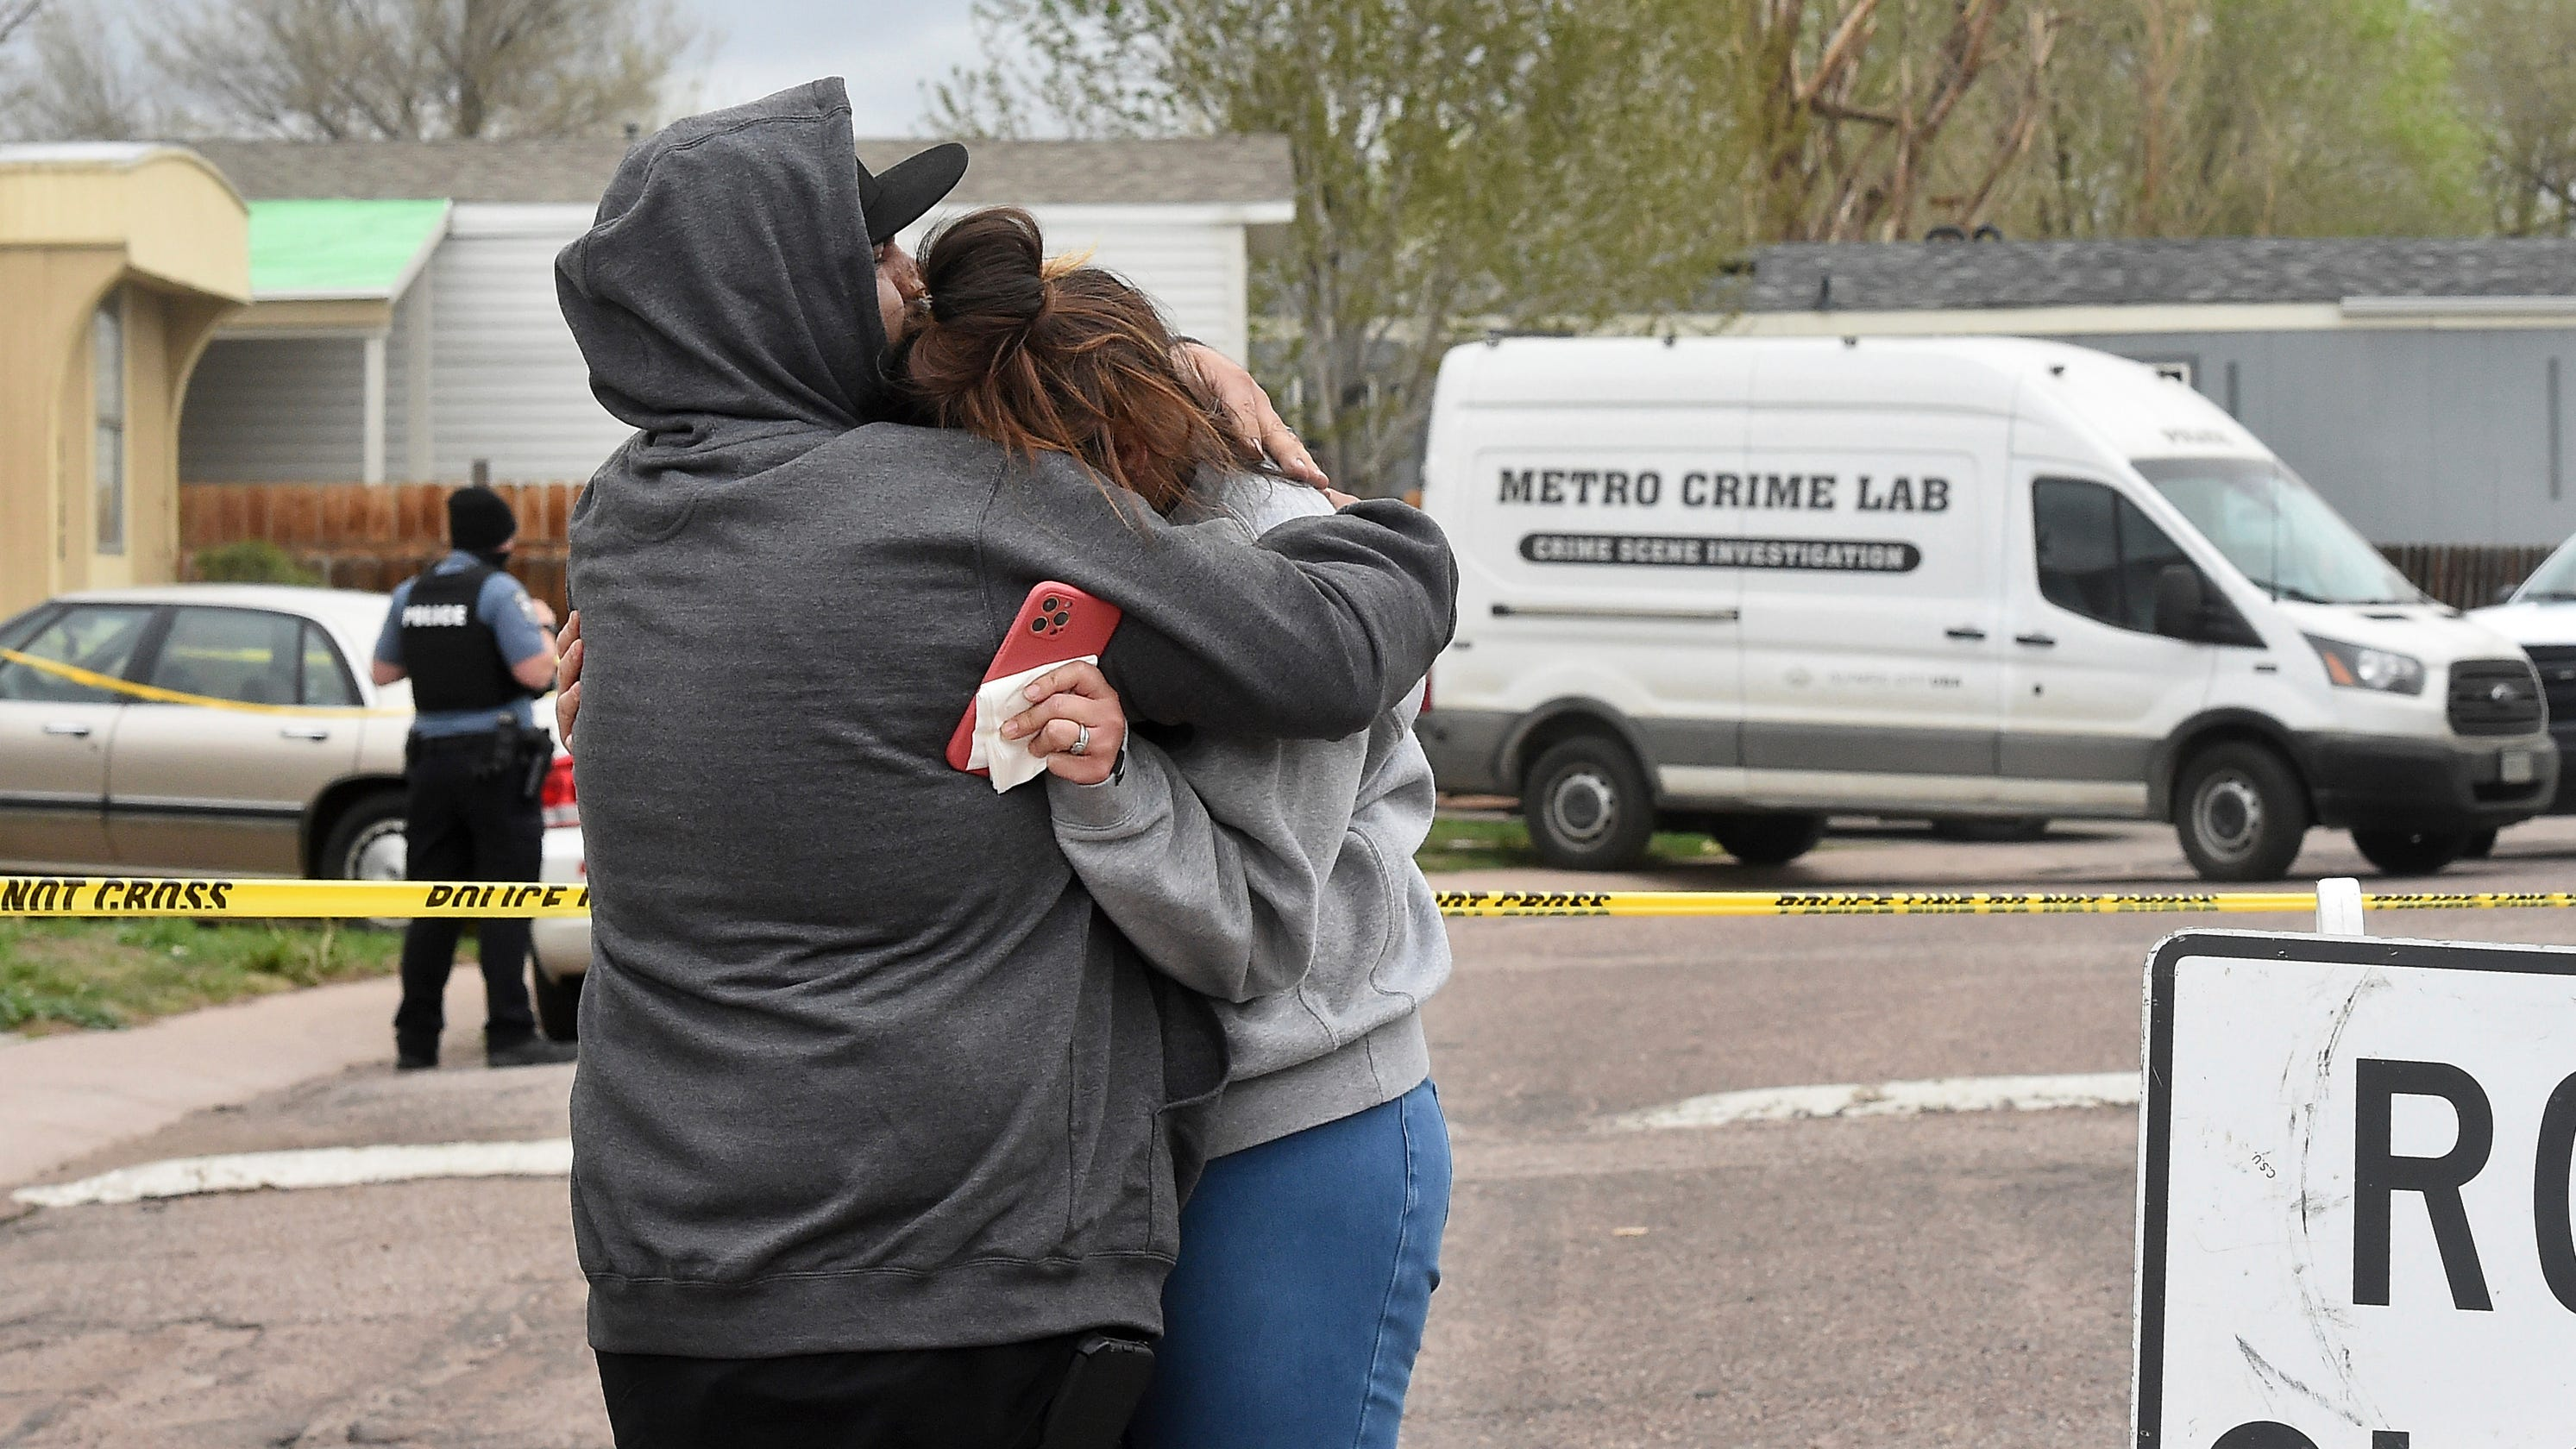 Police searching for answers, to release additional details in Colorado Springs mass shooting